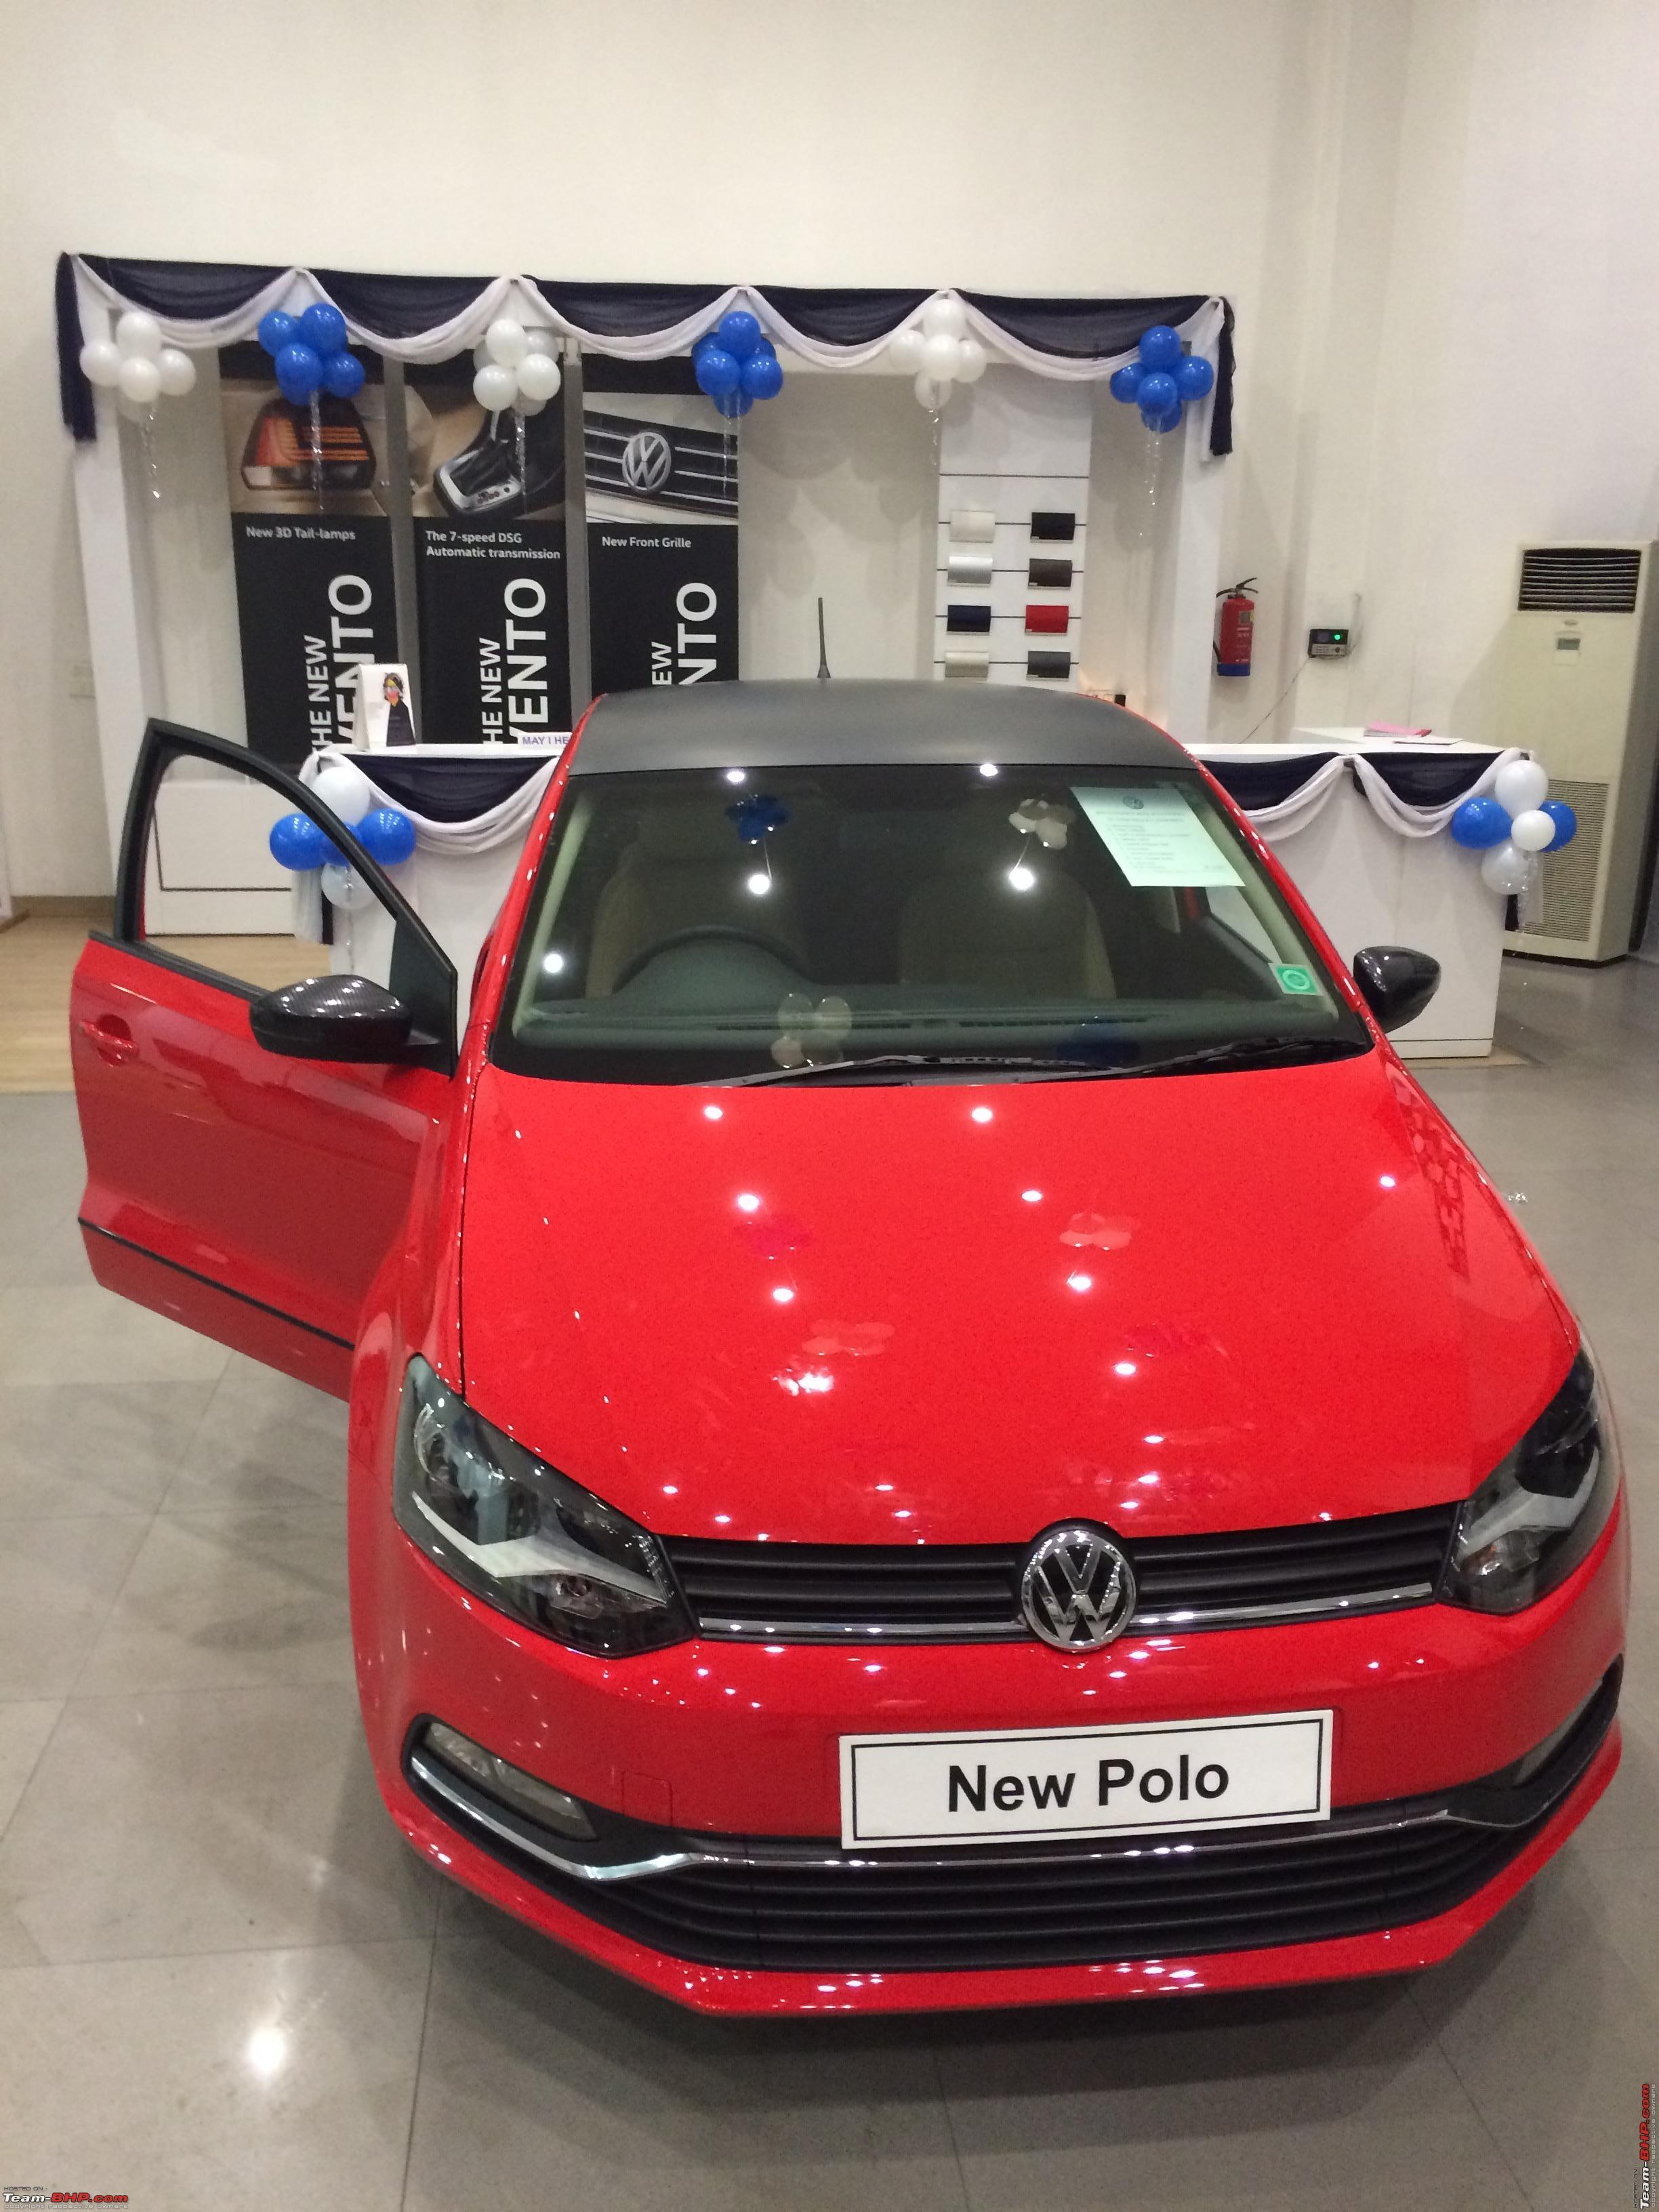 Vw Polo Exquisite Amp Vento Highline Plus Editions Coming Up Edit Launched Page 2 Team Bhp